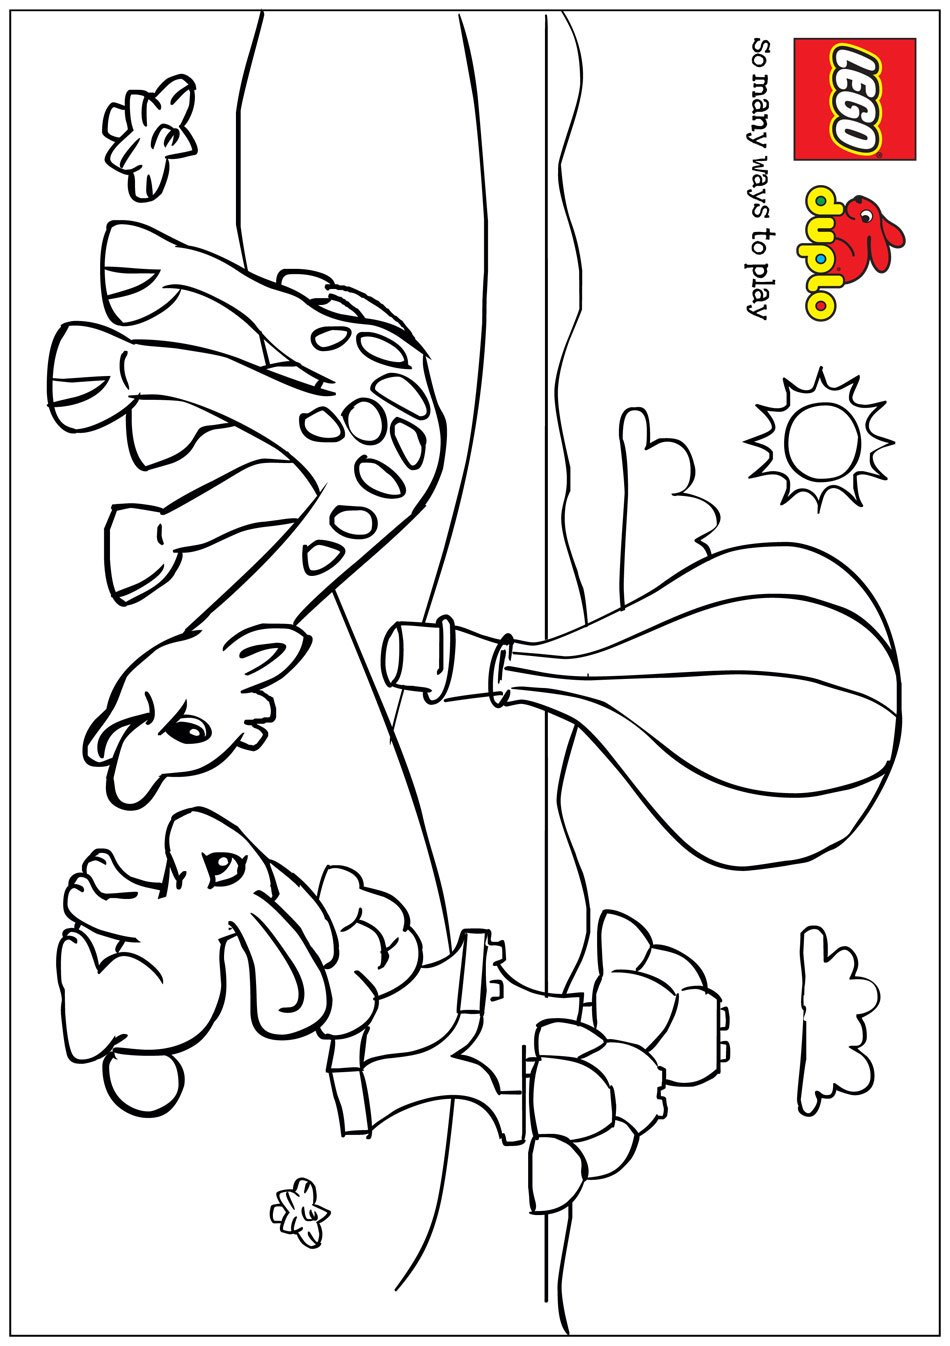 /Images/ColoringPagesTwoFriends_Download.jpg